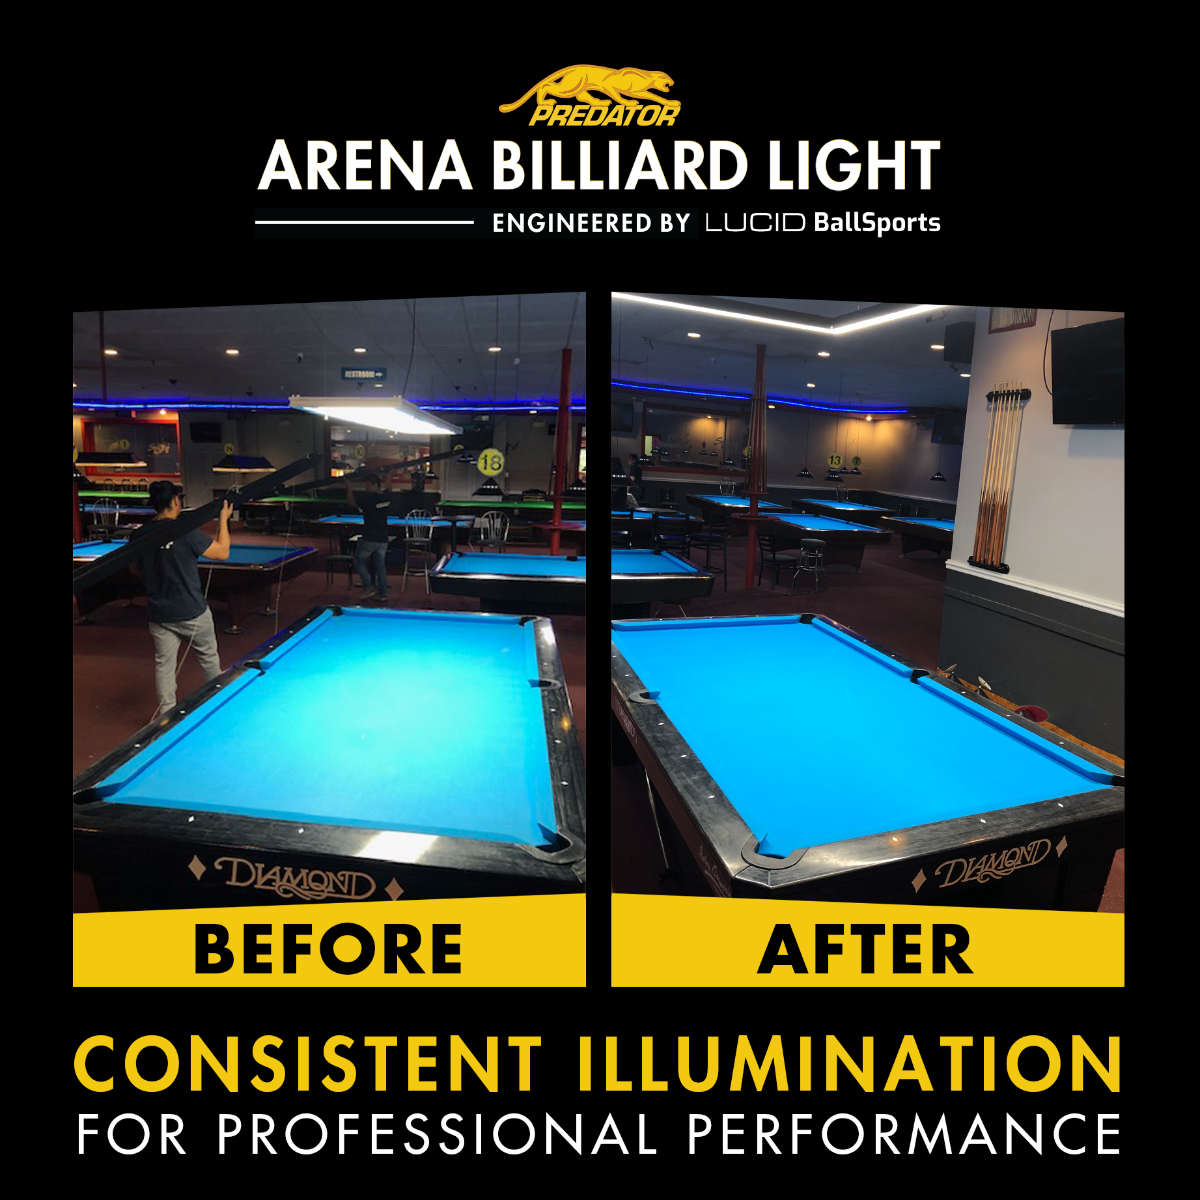 Predator Arena Billiard Lights Before & After